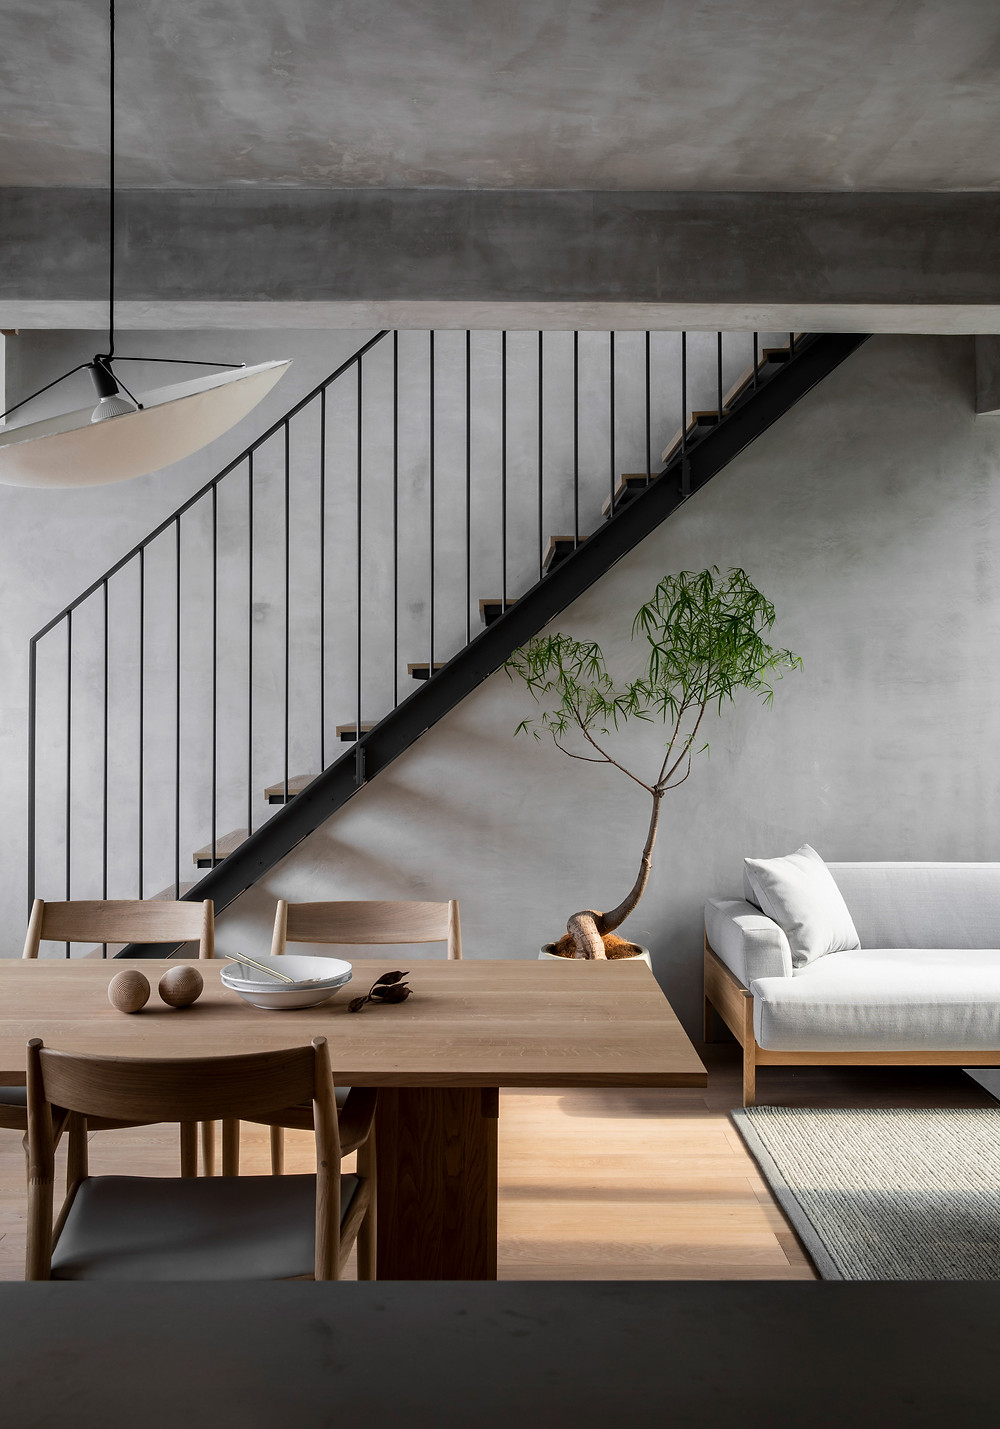 Kinuta Terrace in Tokyo features assorted Kvadrat upholstery and curtain textiles, as well as Kvadrat rugs. Located in a quiet residential area, the renovated premises comprises 36 maisonettes and a verdant courtyard with a 100m garden passage.  Harmonious materiality and connection with nature characterise the concept for Kinuta Terrace, which incorporates interior design, landscaping and custom-made furniture. This nuanced approach makes for clean yet relaxed and warm living spaces.